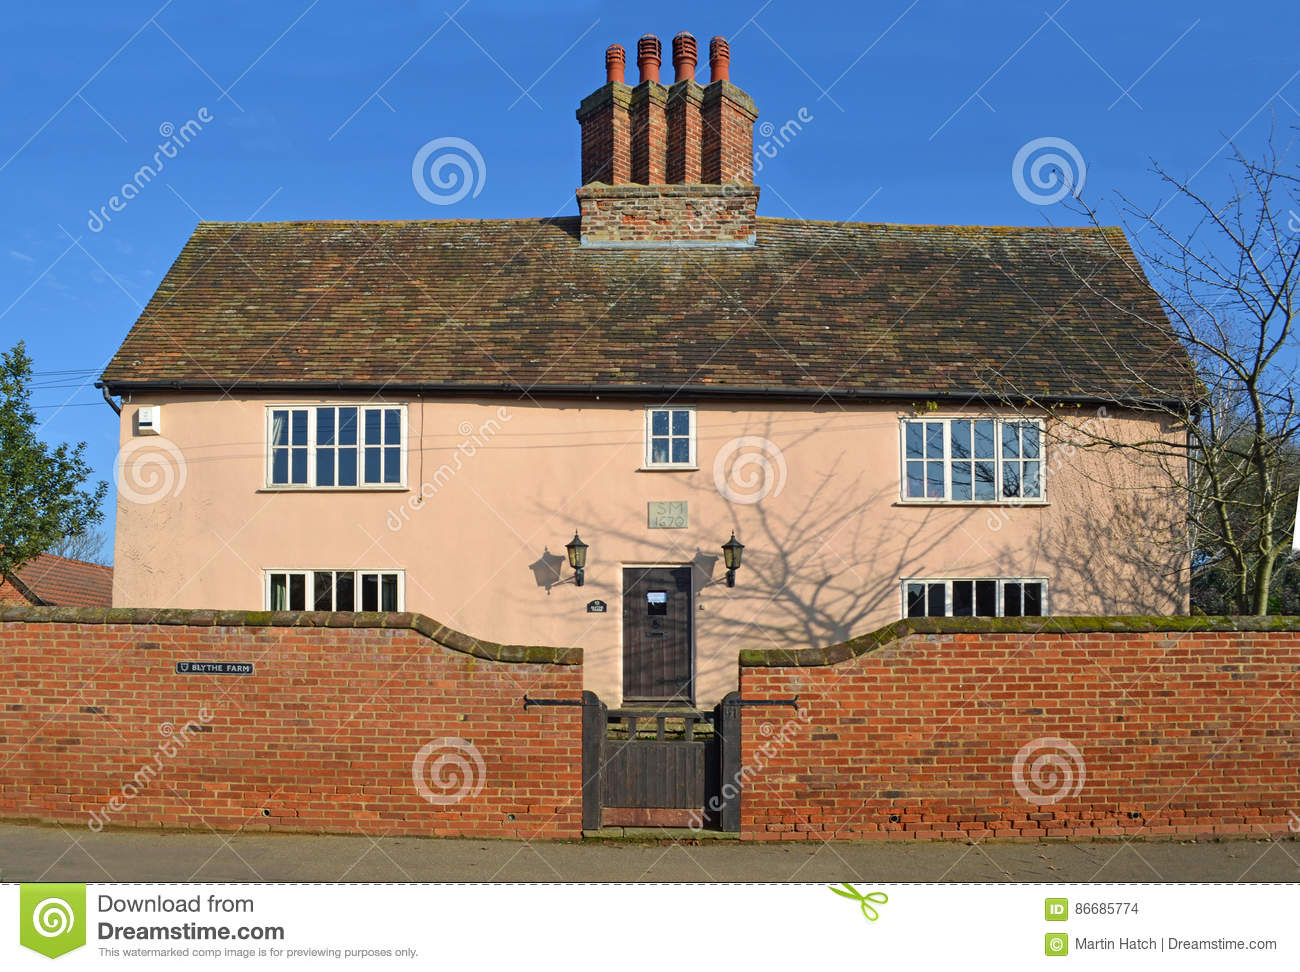 Old farm house with brick wall gate and period chimney for Farmhouse brick